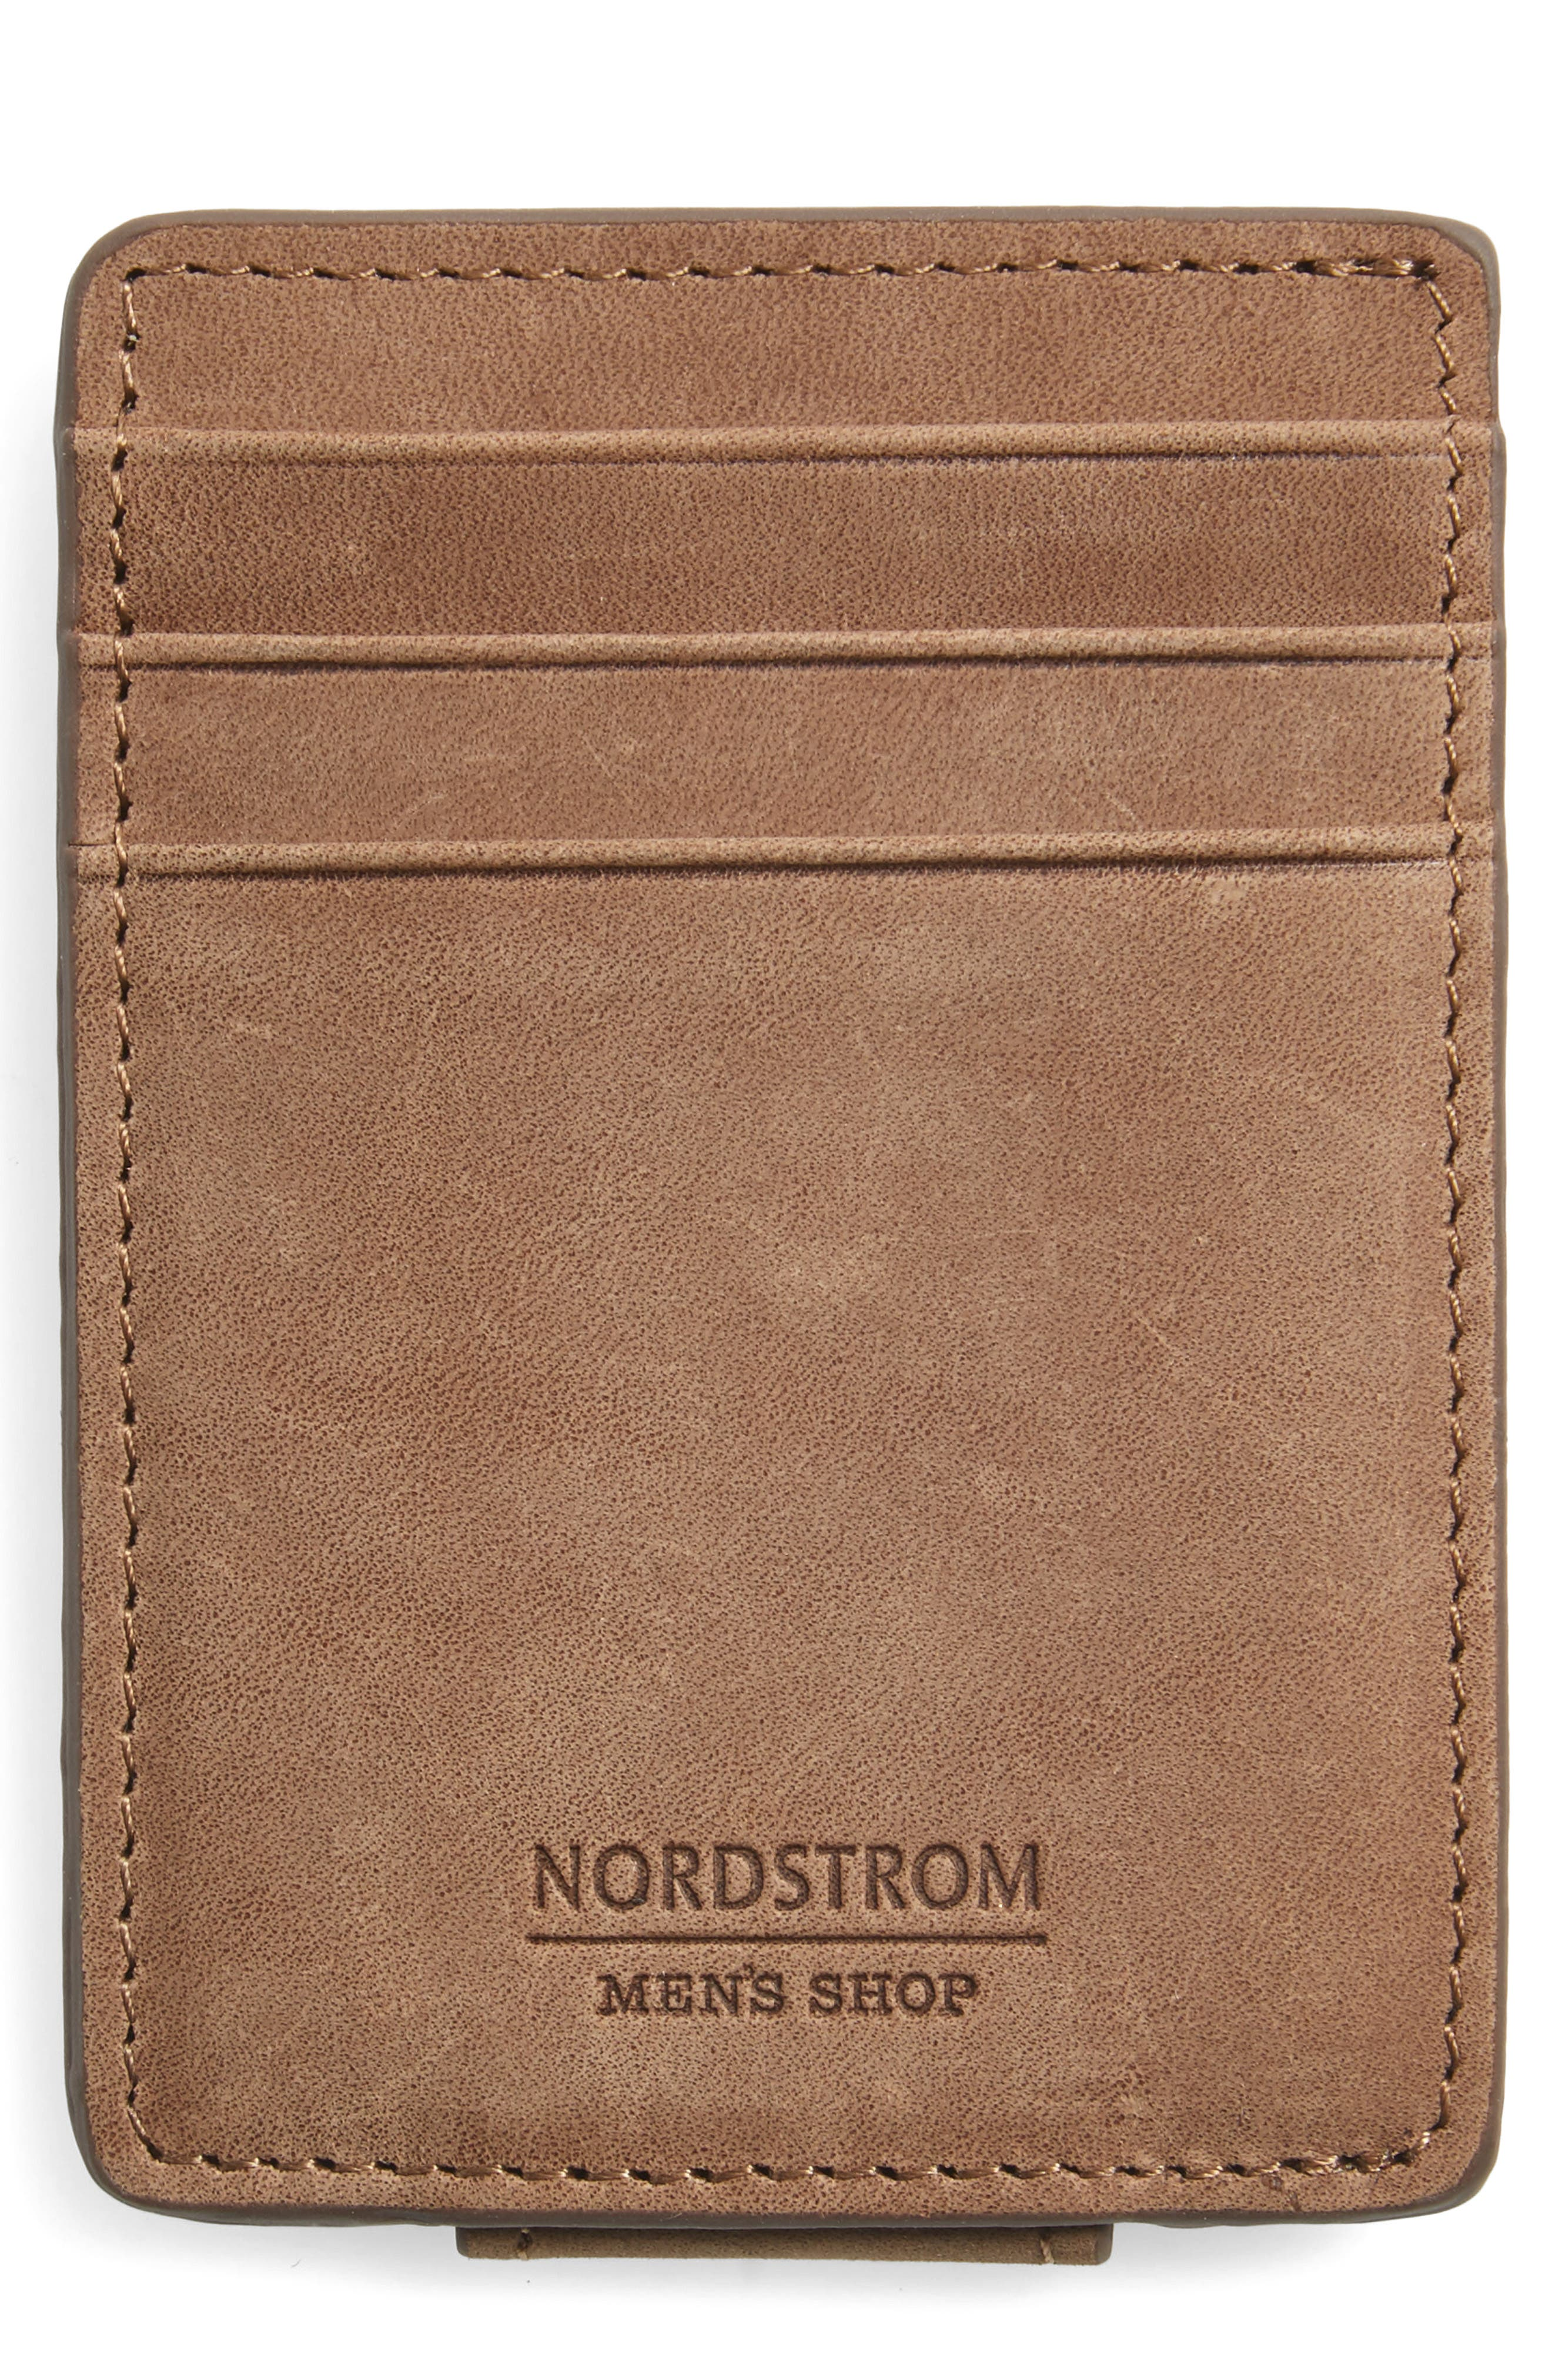 NORDSTROM MENS SHOP Upton Leather Money Clip Card Case